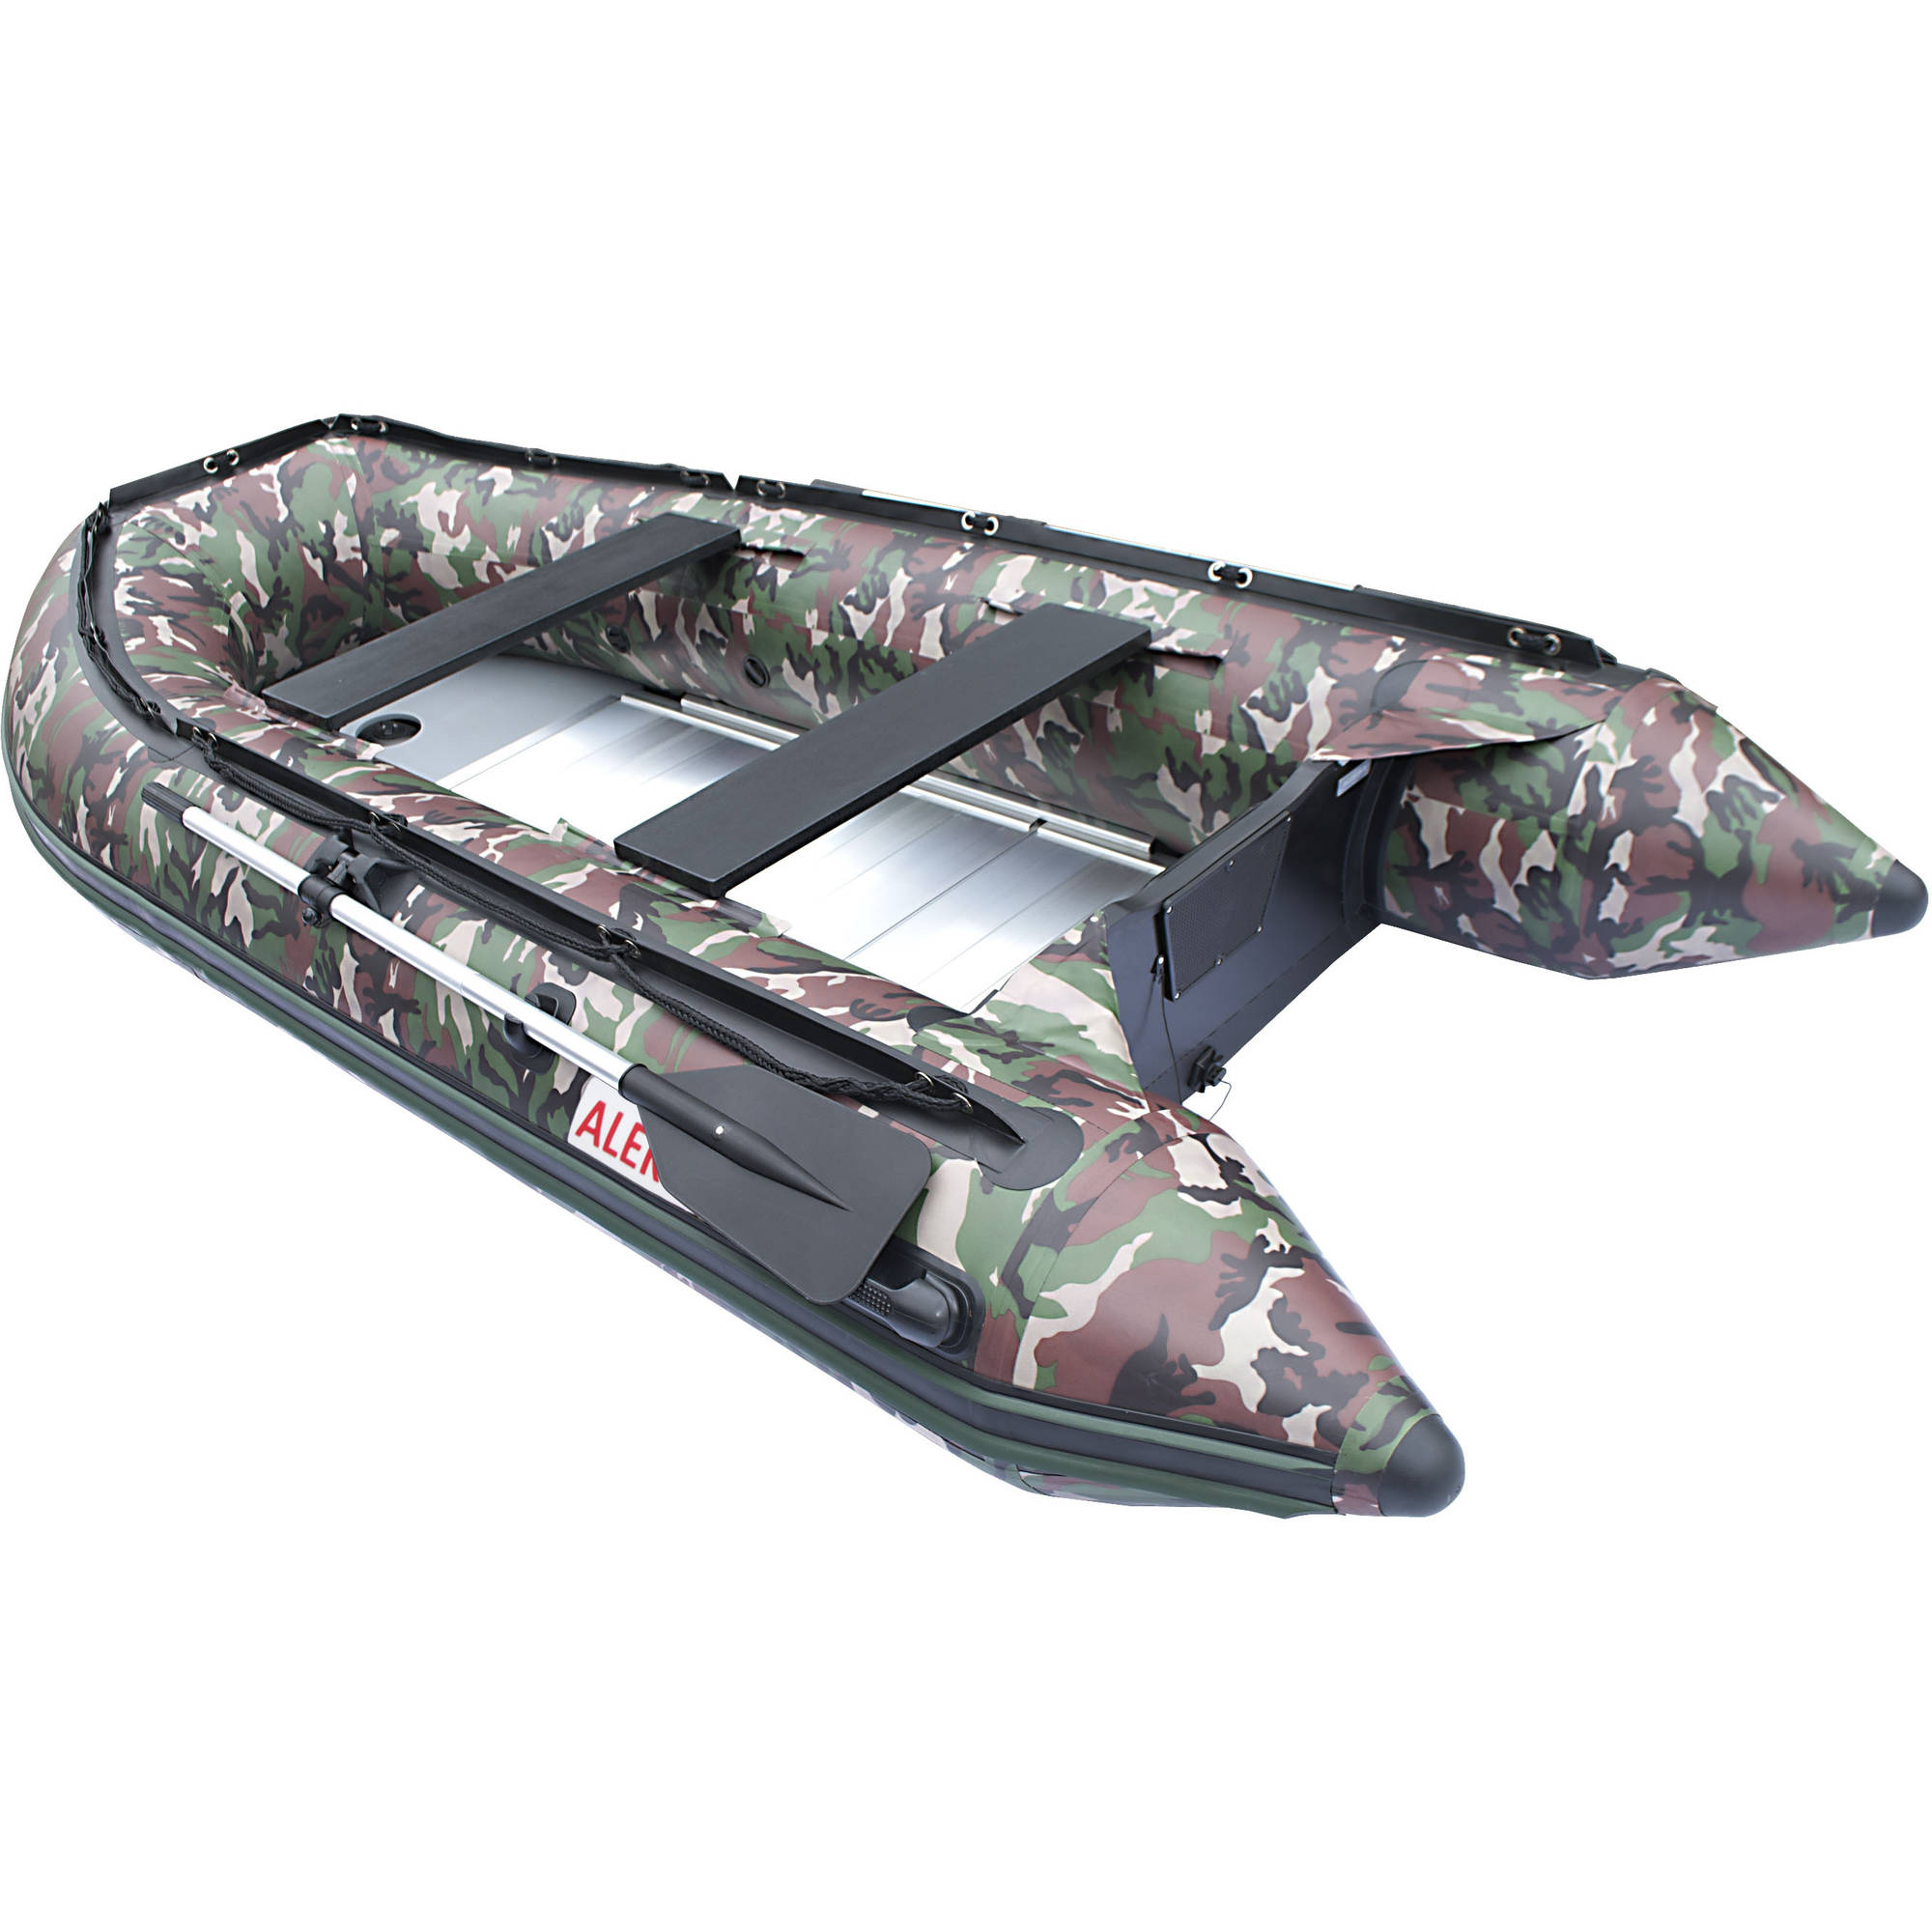 ALEKO Inflatable Fishing Boat - 4-Person - 10.5 feet - Camouflage